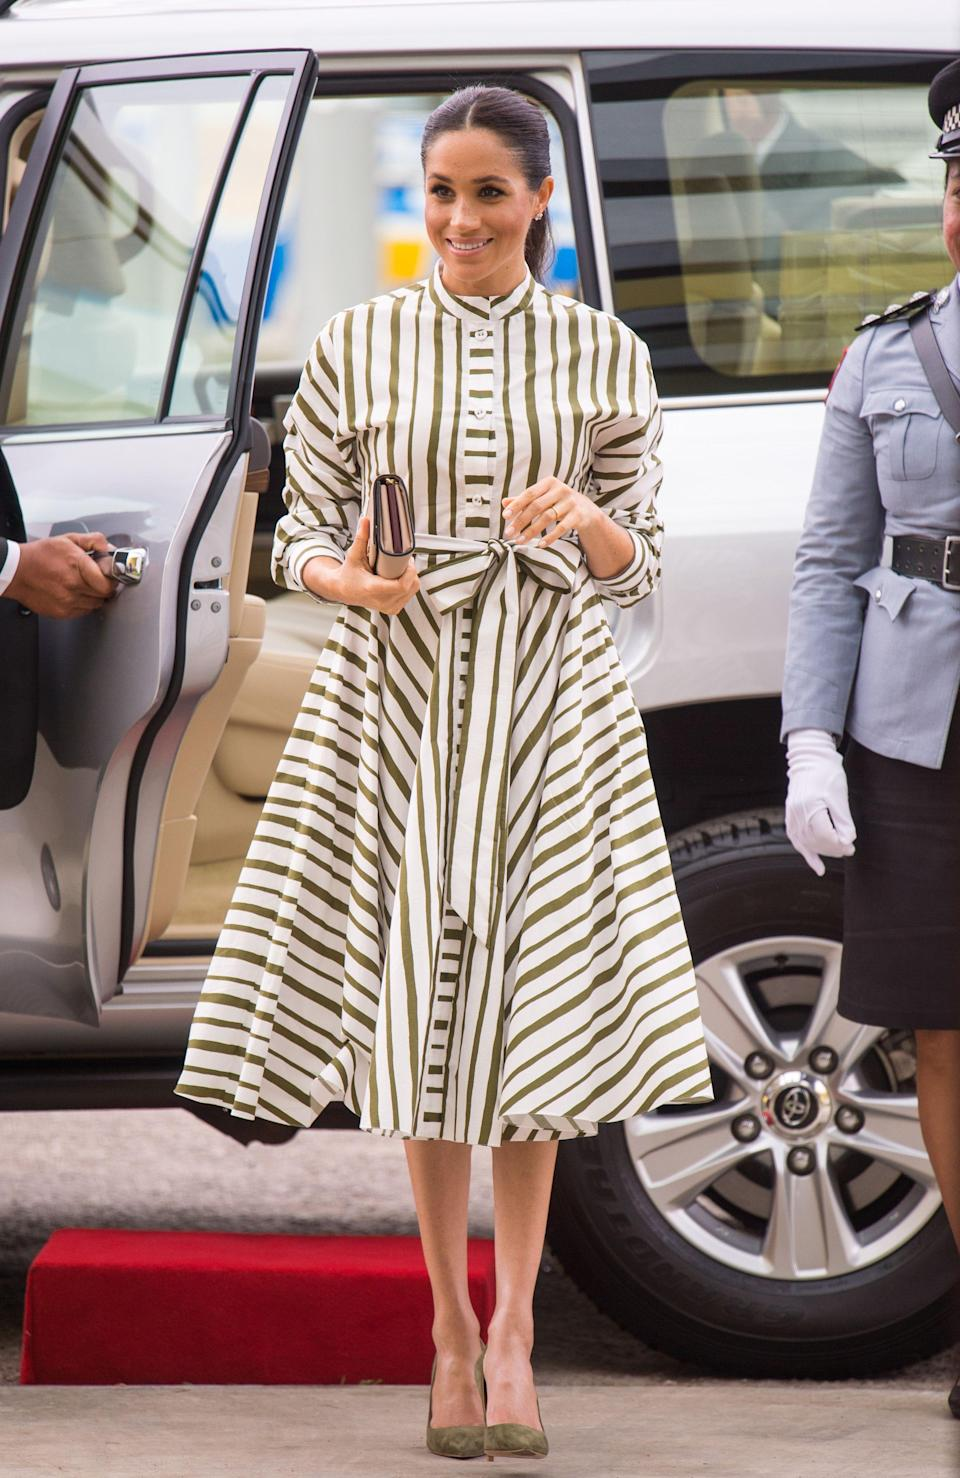 """<p>Meghan Markle opted for a cotton green and white striped dress from <a href=""""https://www.modaoperandi.com/martin-grant-ss19/striped-cotton-dress?country=GB&gclid=CjwKCAjw9sreBRBAEiwARroYm9a-bx3oFjpg4AuR7dCDnwql7gqBydml5Q6ng9Ylowj6LDGSmFCSSBoCGm4QAvD_BwE&gclsrc=aw.ds"""" rel=""""nofollow noopener"""" target=""""_blank"""" data-ylk=""""slk:Martin Grant's SS19 resort collection"""" class=""""link rapid-noclick-resp"""">Martin Grant's SS19 resort collection</a>.</p><p>She teamed the look with suede green heels and a <a href=""""https://www.net-a-porter.com/gb/en/Shop/Designers/Prada/Bags?keywords=Prada&pn=1&npp=60&image_view=product&dScroll=0"""" rel=""""nofollow noopener"""" target=""""_blank"""" data-ylk=""""slk:Prada"""" class=""""link rapid-noclick-resp"""">Prada</a> nude-coloured clutch bag.</p>"""